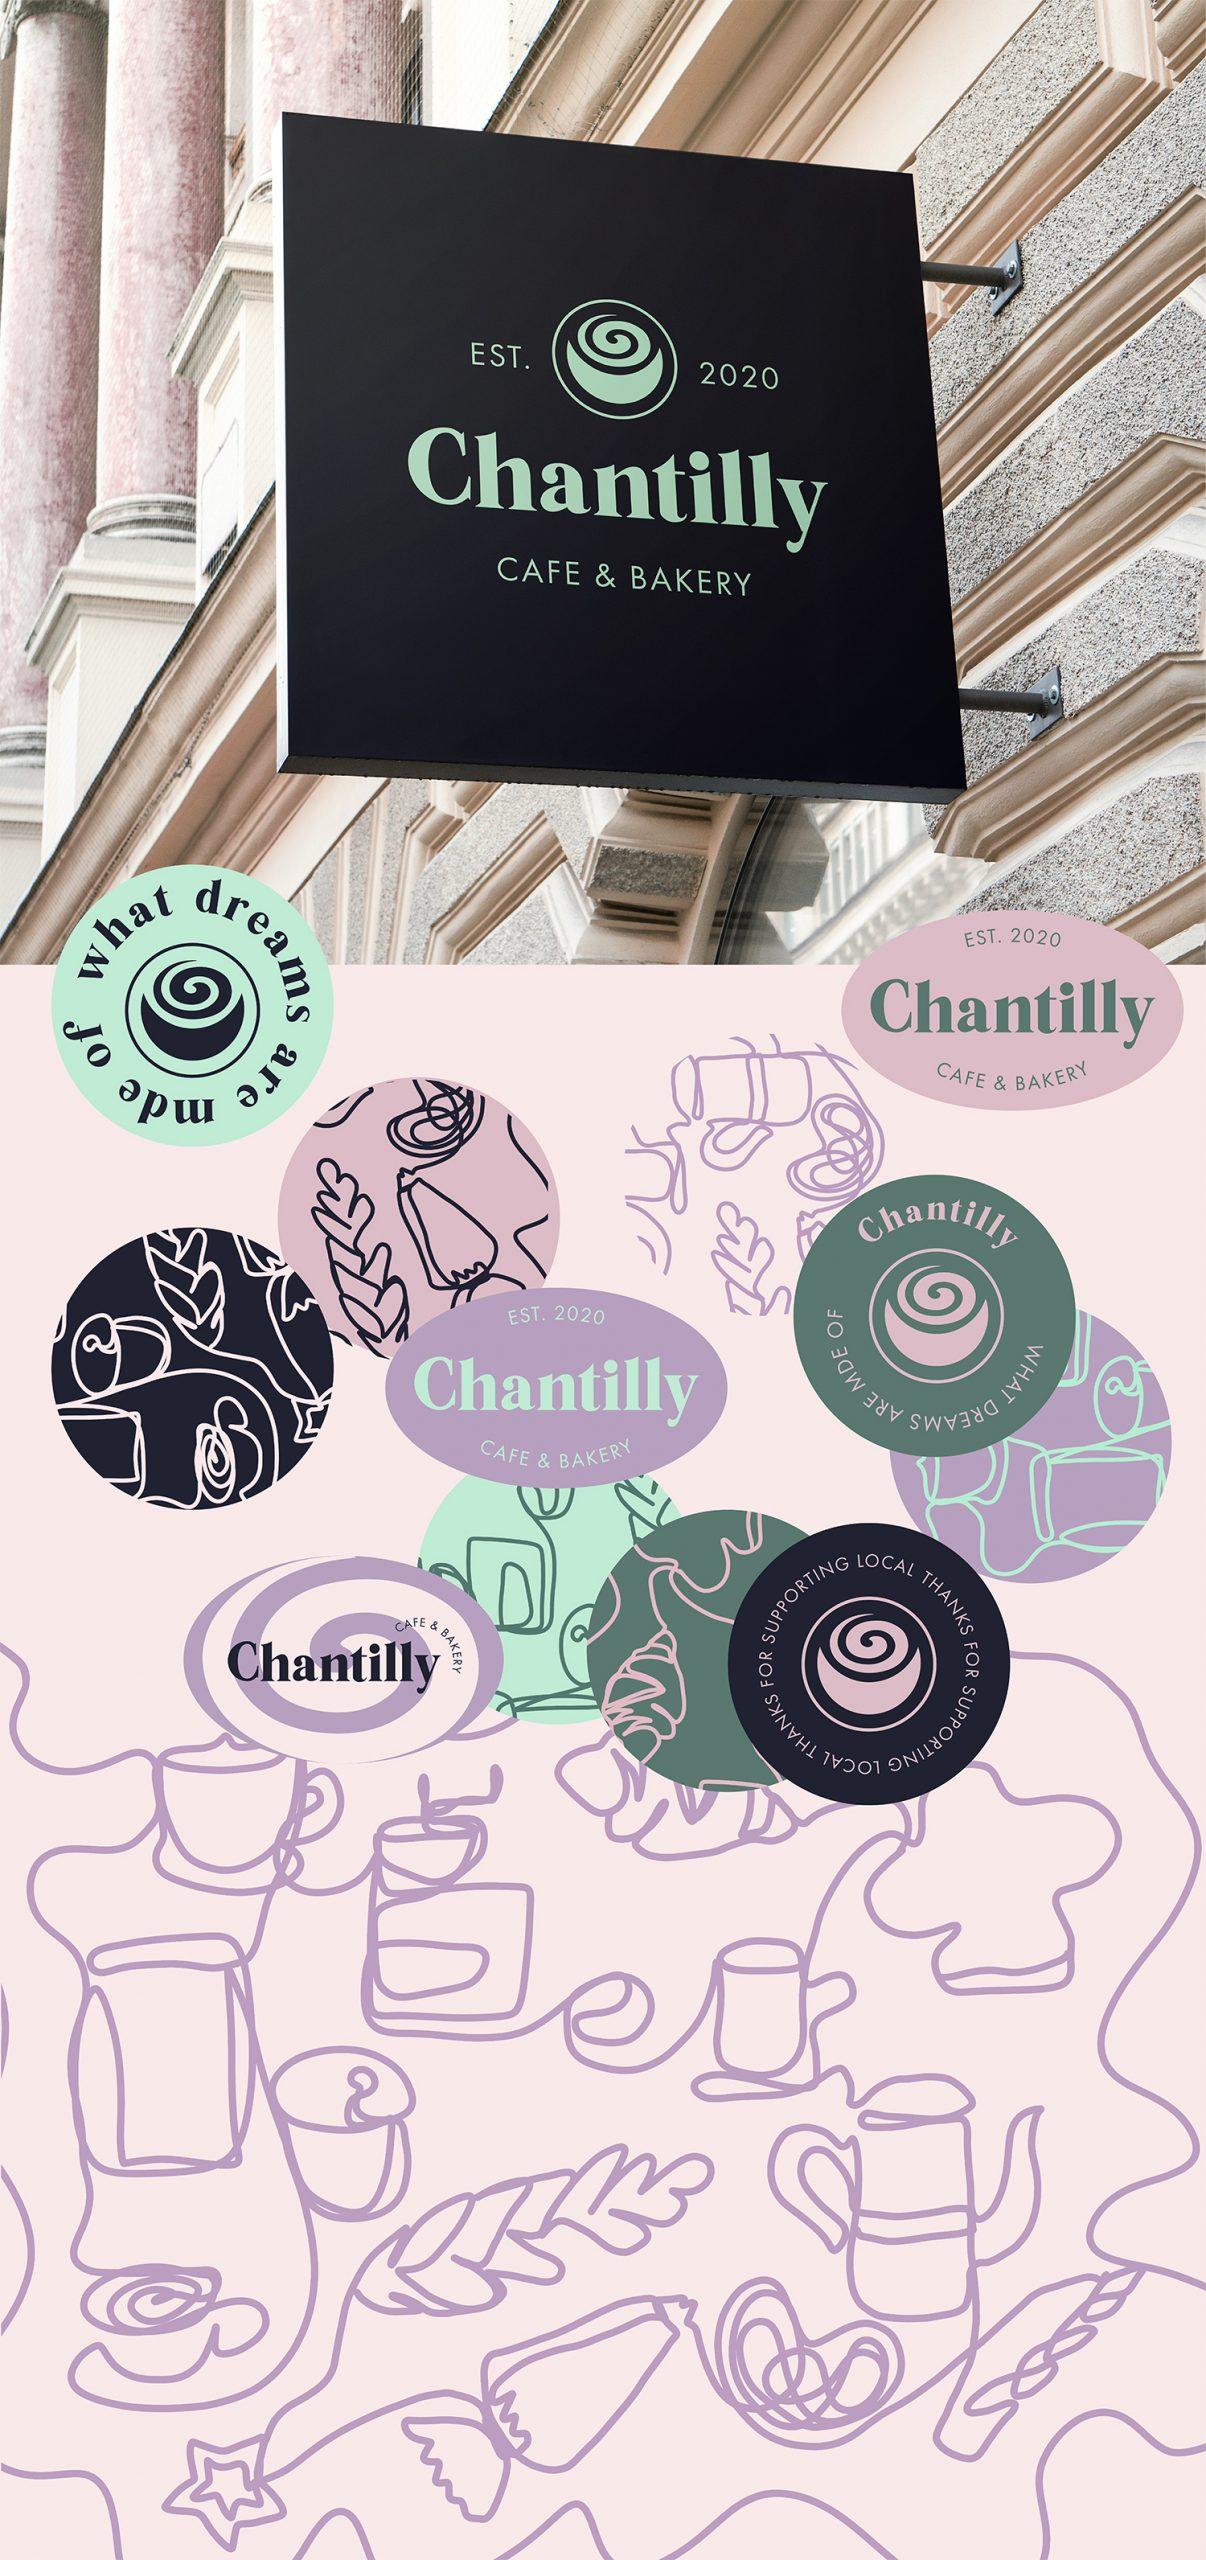 Chantilly sign and illustrations